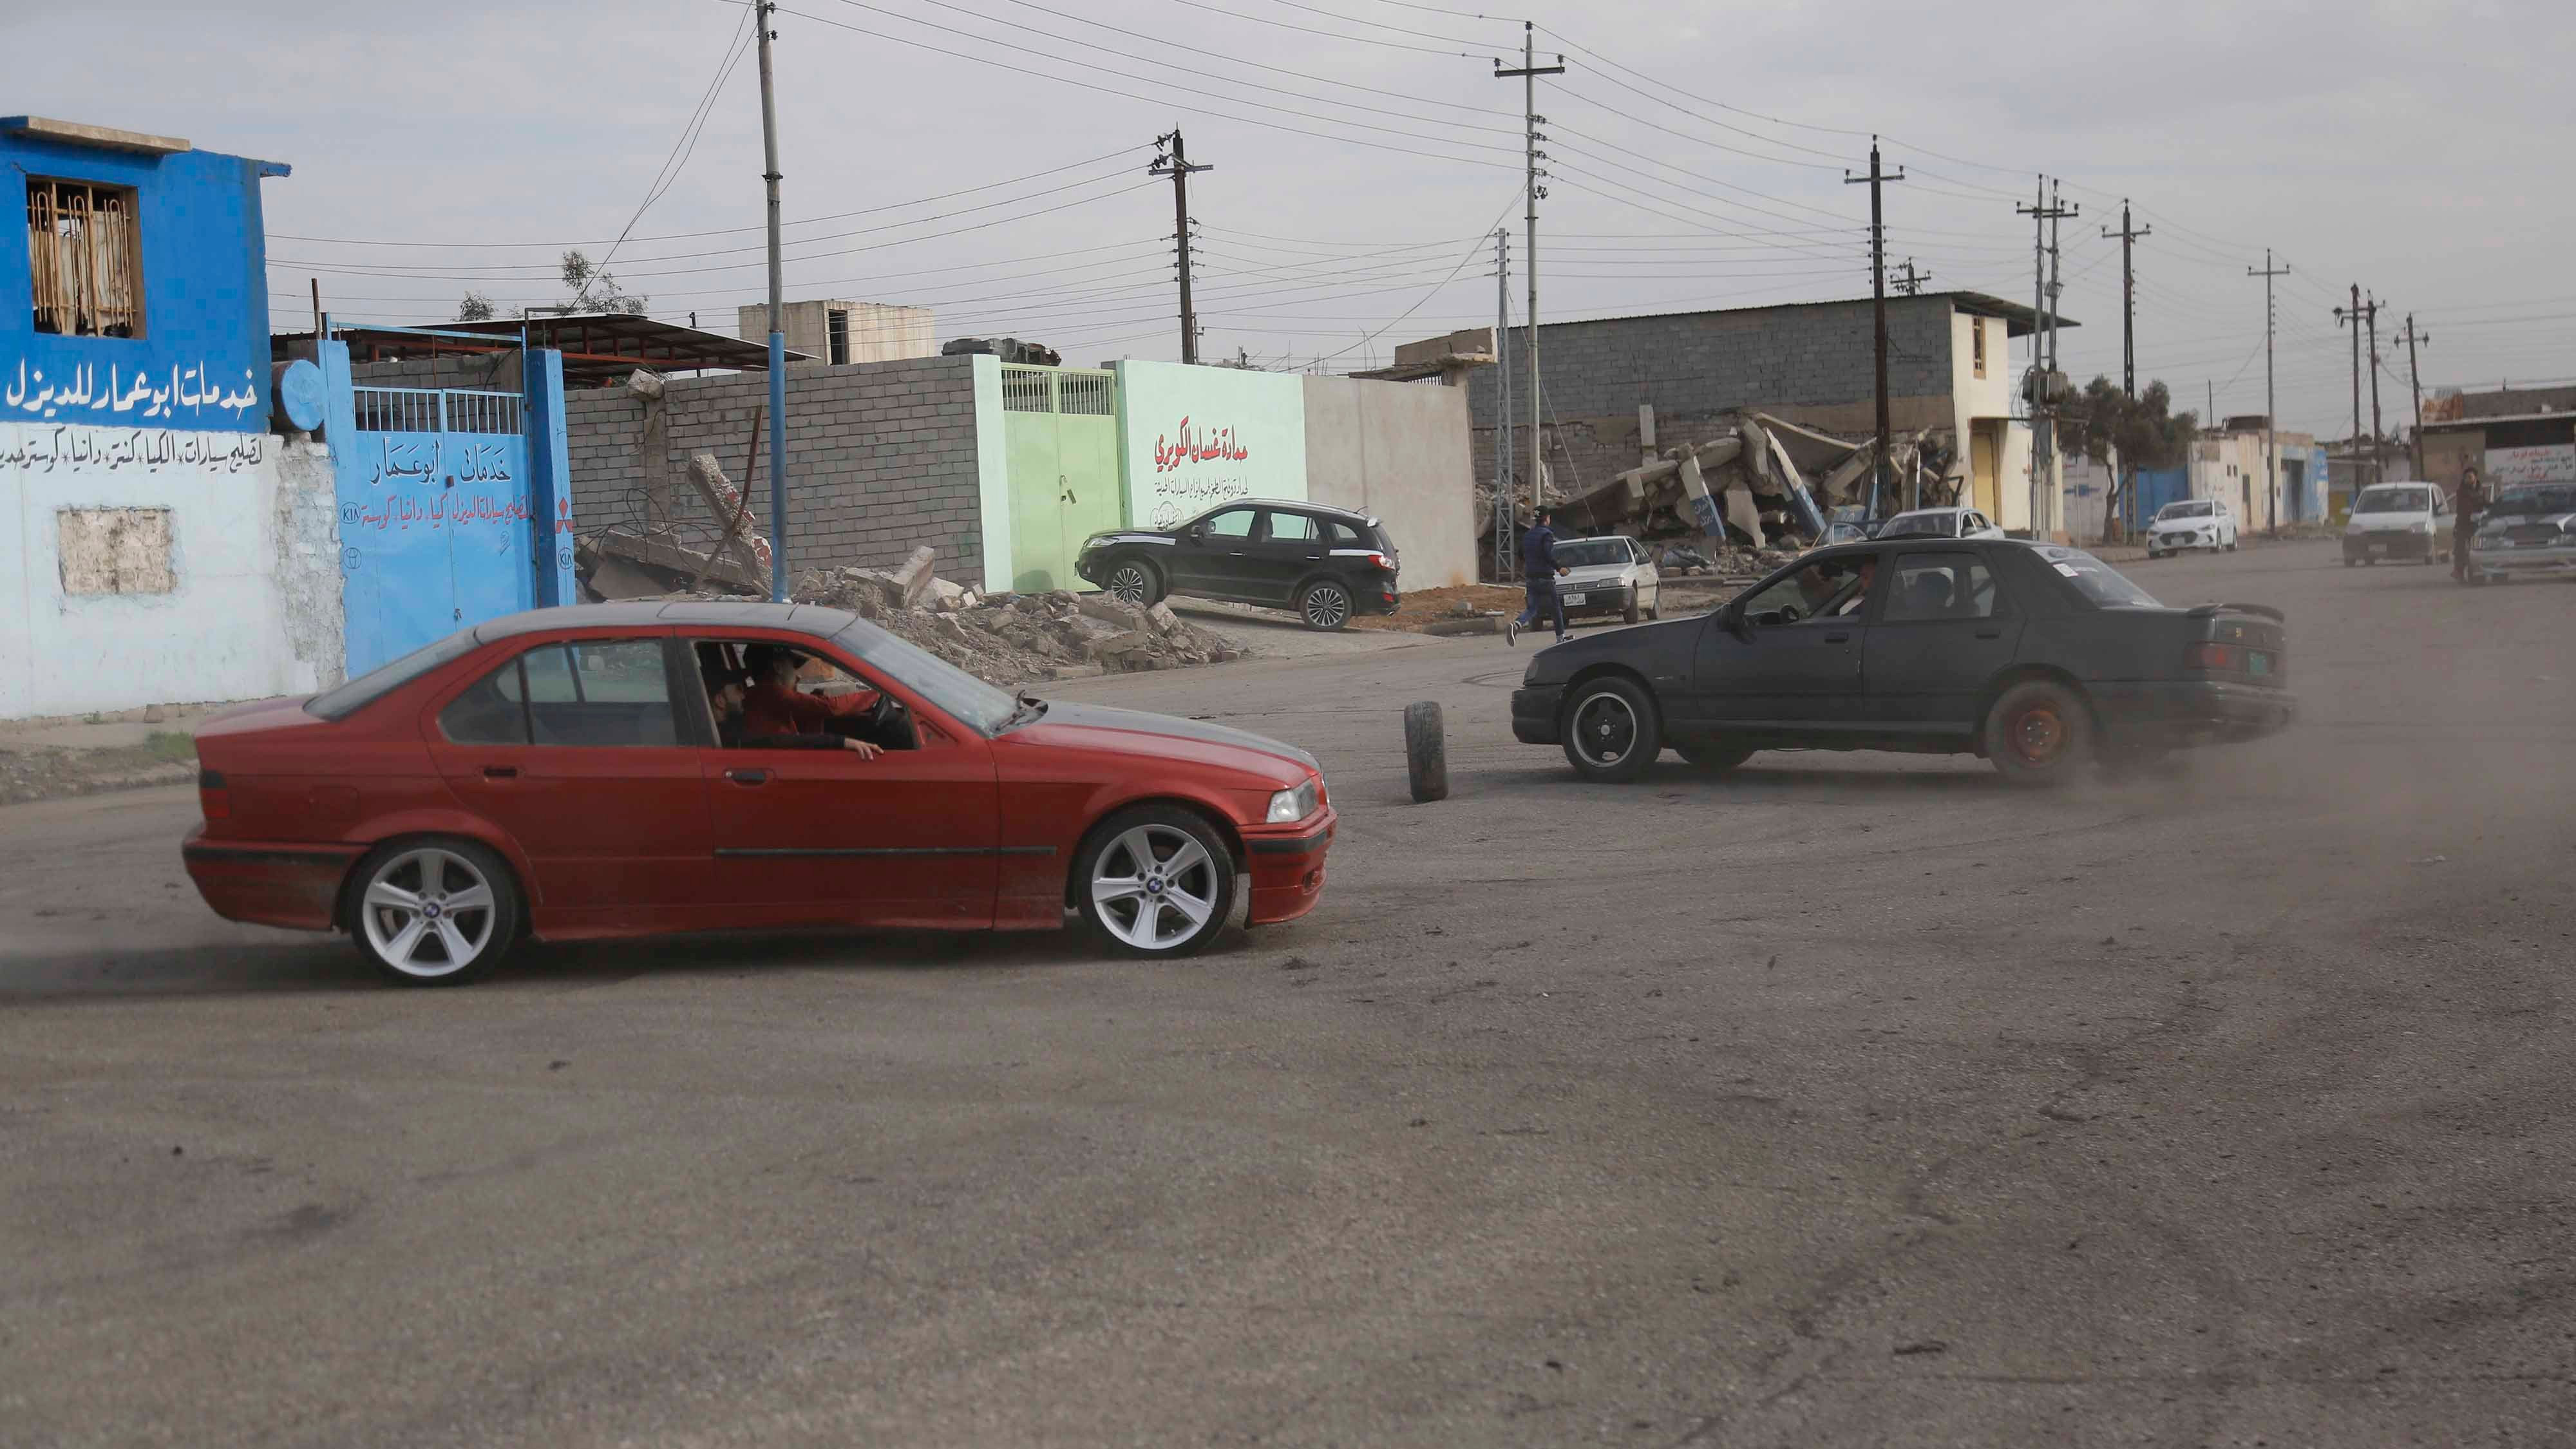 The Drifting Competitions in the Former ISIS Stronghold of Mosul